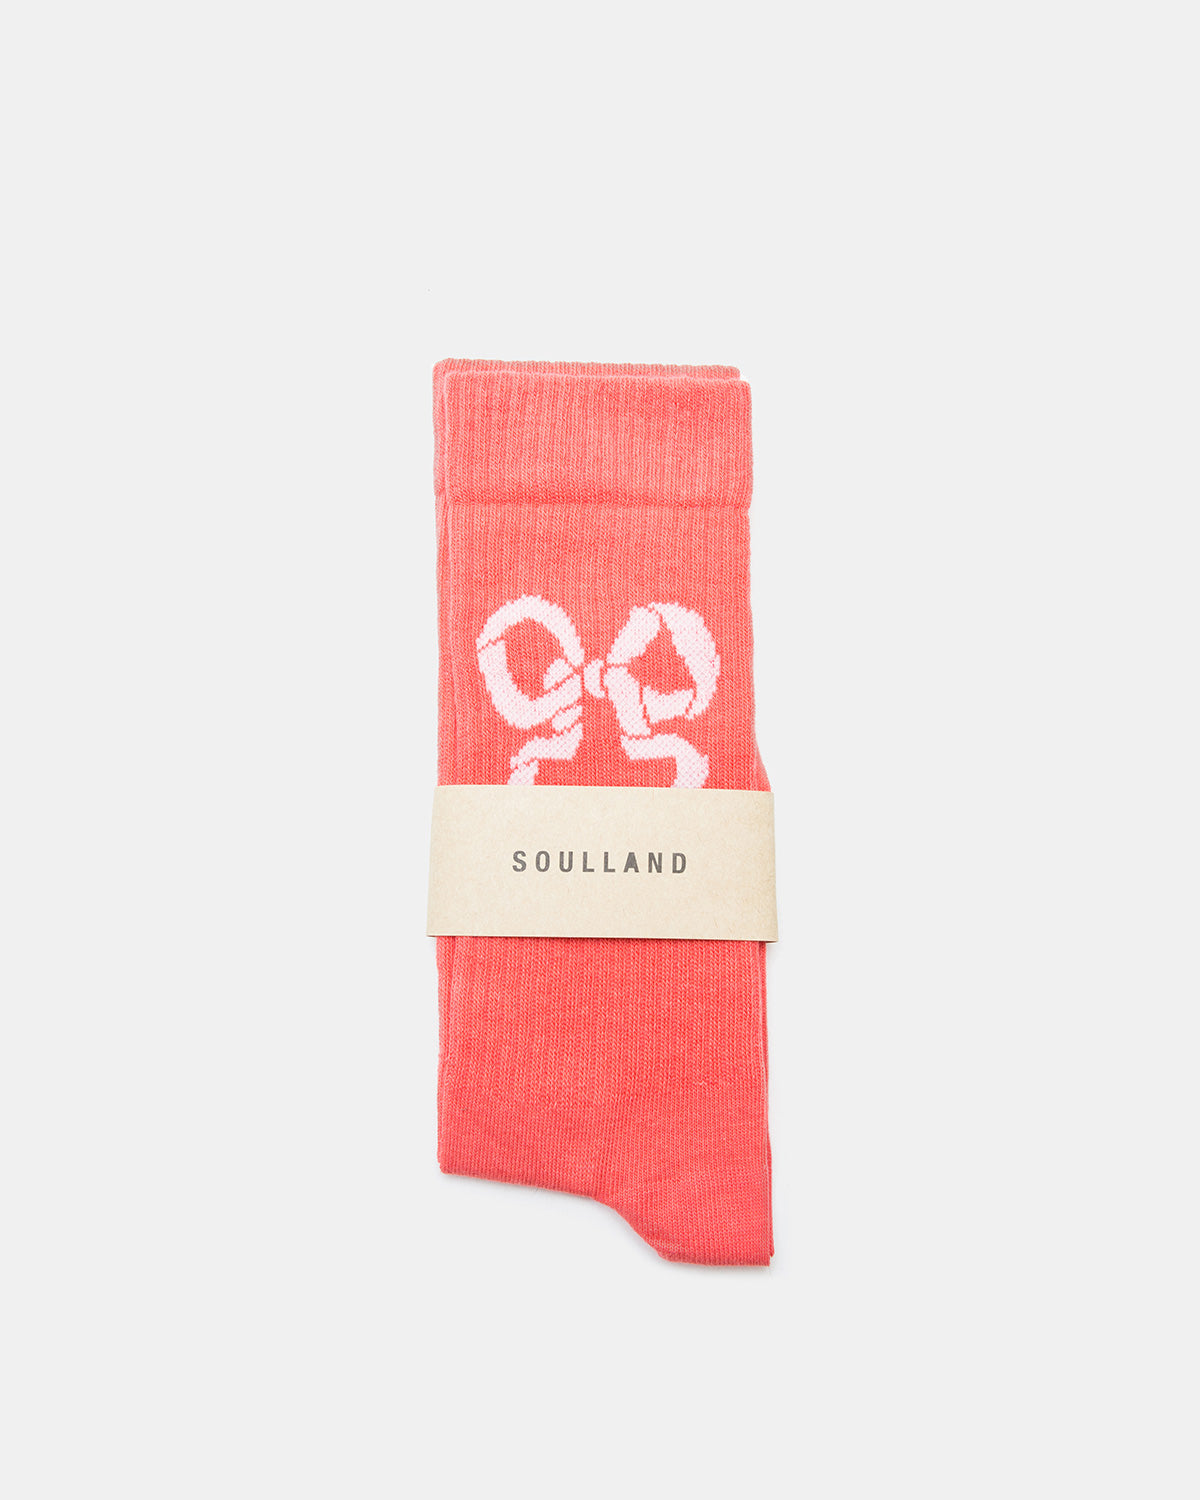 Soulland - Ribbon Socks (Dusty Coral)